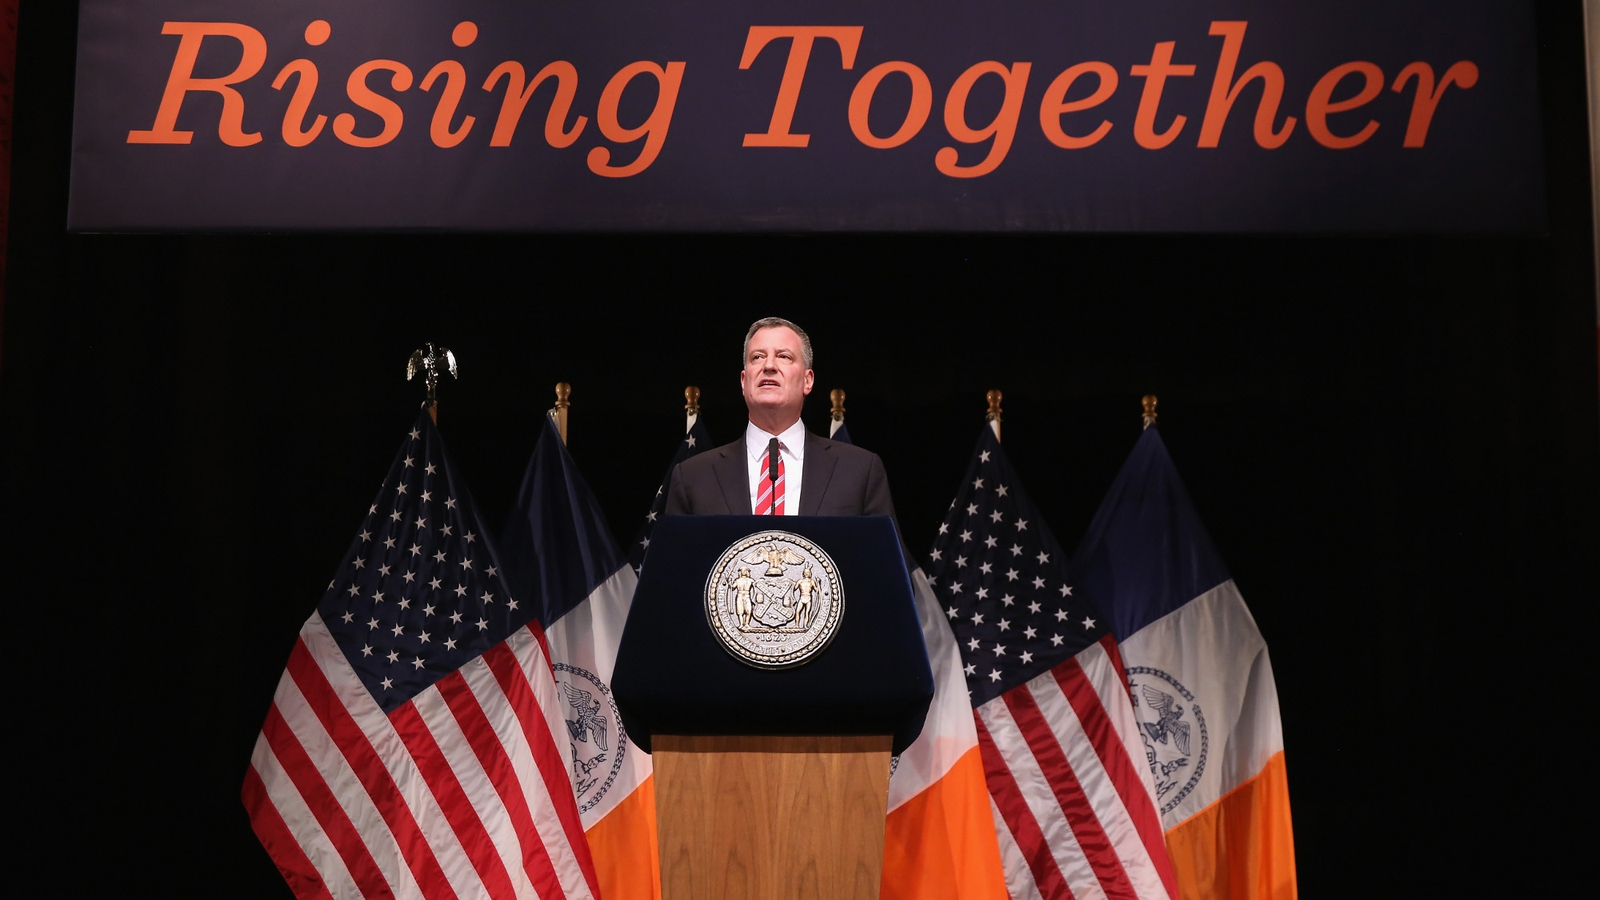 New York To Issue Undocumented Immigrant Papers